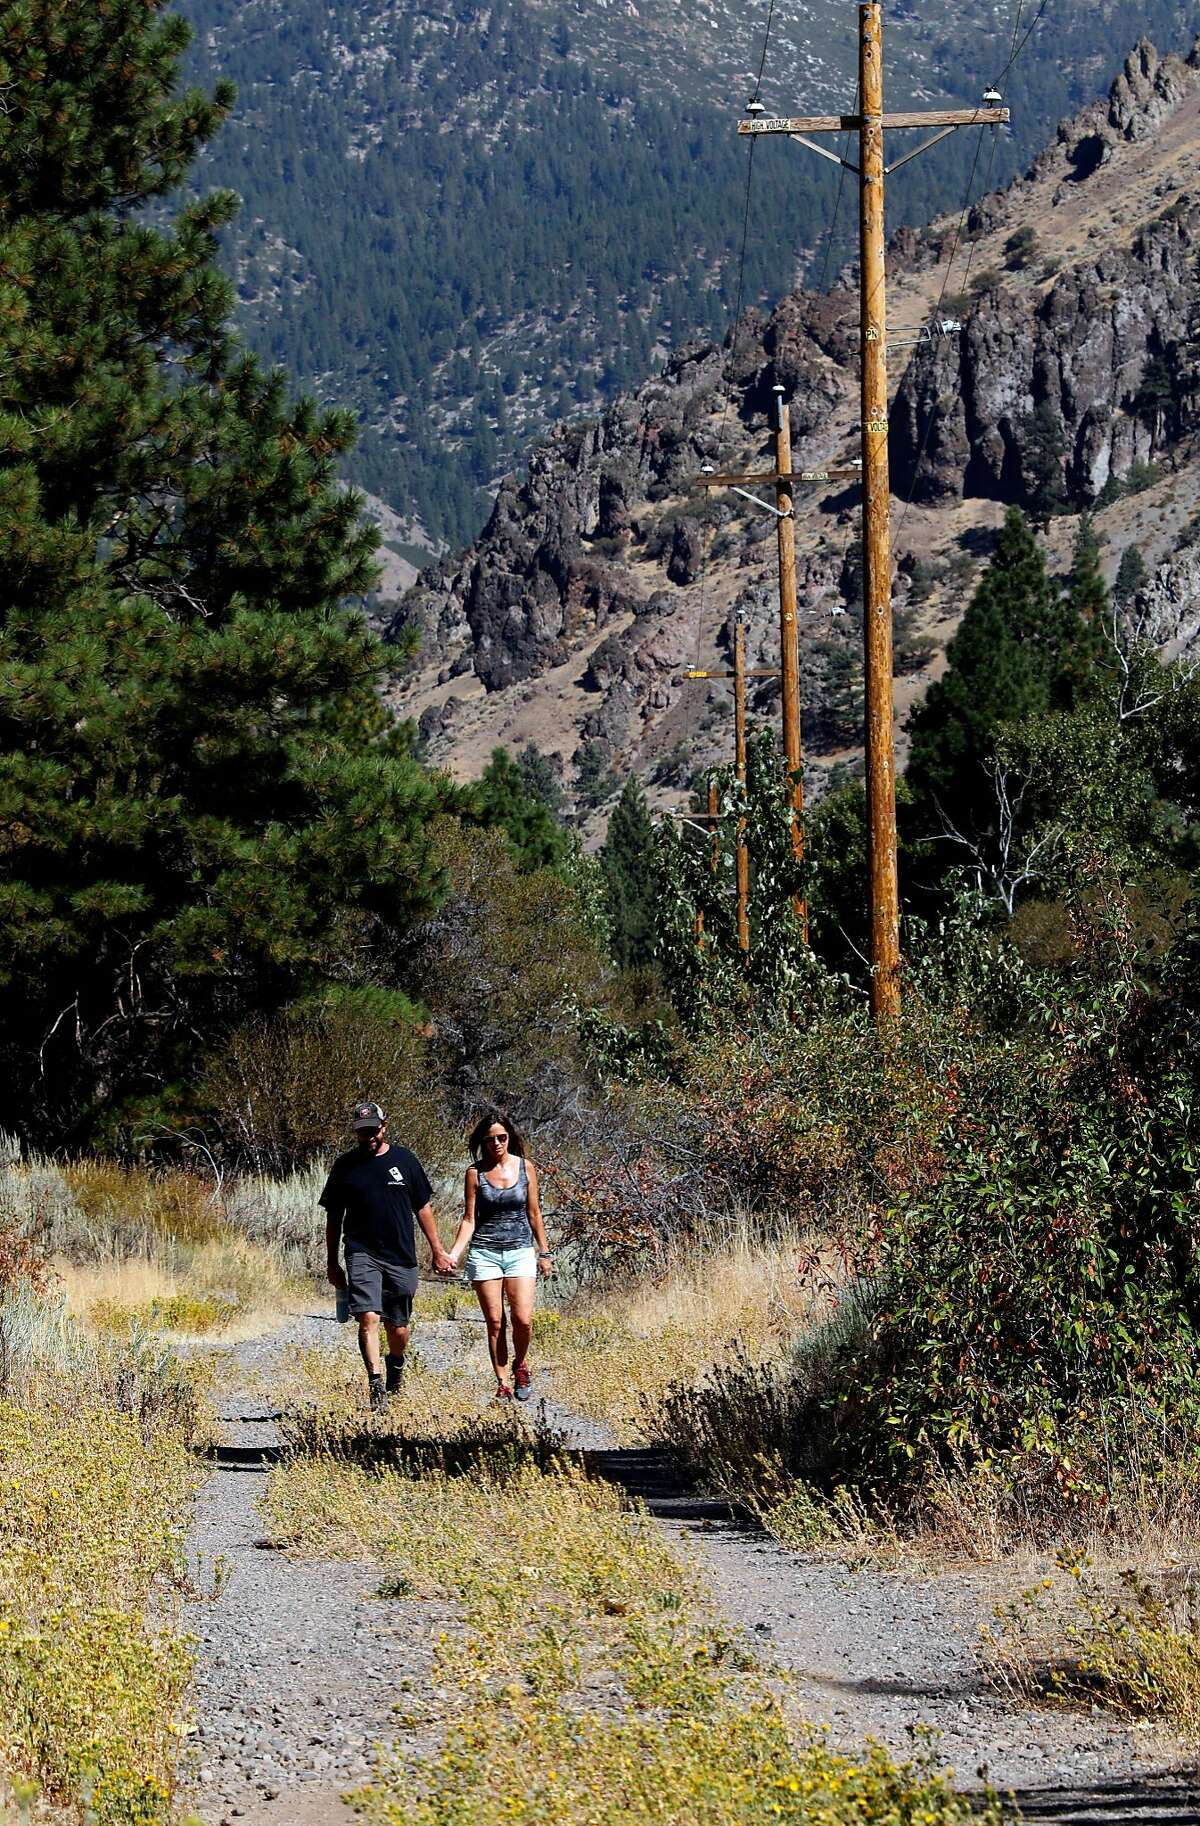 Mike and Patty Dewey of Reno, Nv.enjoy a hike along the Tahoe-Pyramid Bikeway between Floriston and Farad, Calif., as seen on Thurs. Sept. 6, 2018.